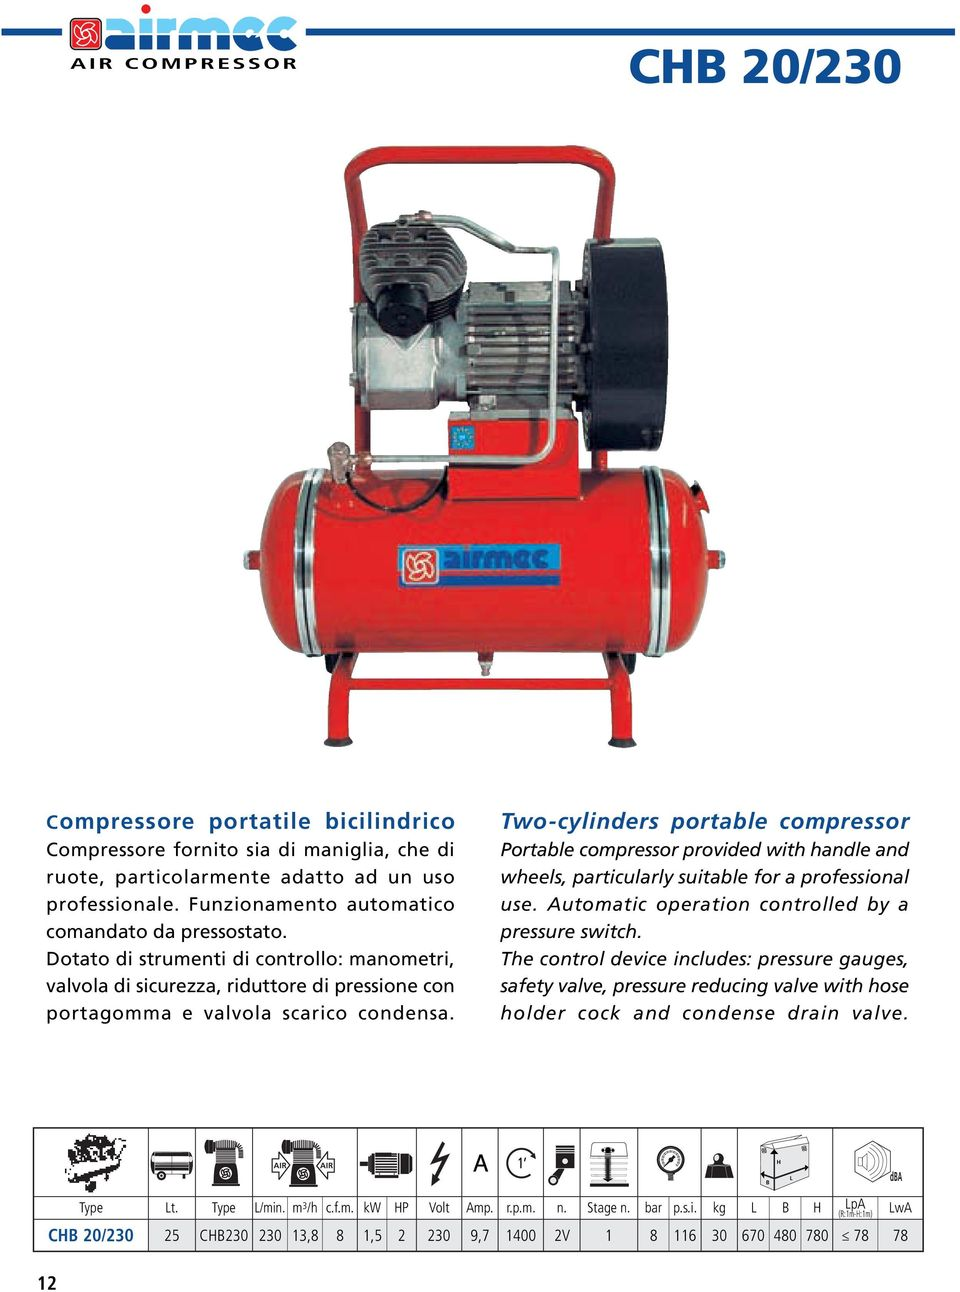 Two-cylinders portable compressor Portable compressor provided with handle and wheels, particularly suitable for a professional use. Automatic operation controlled by a pressure switch.